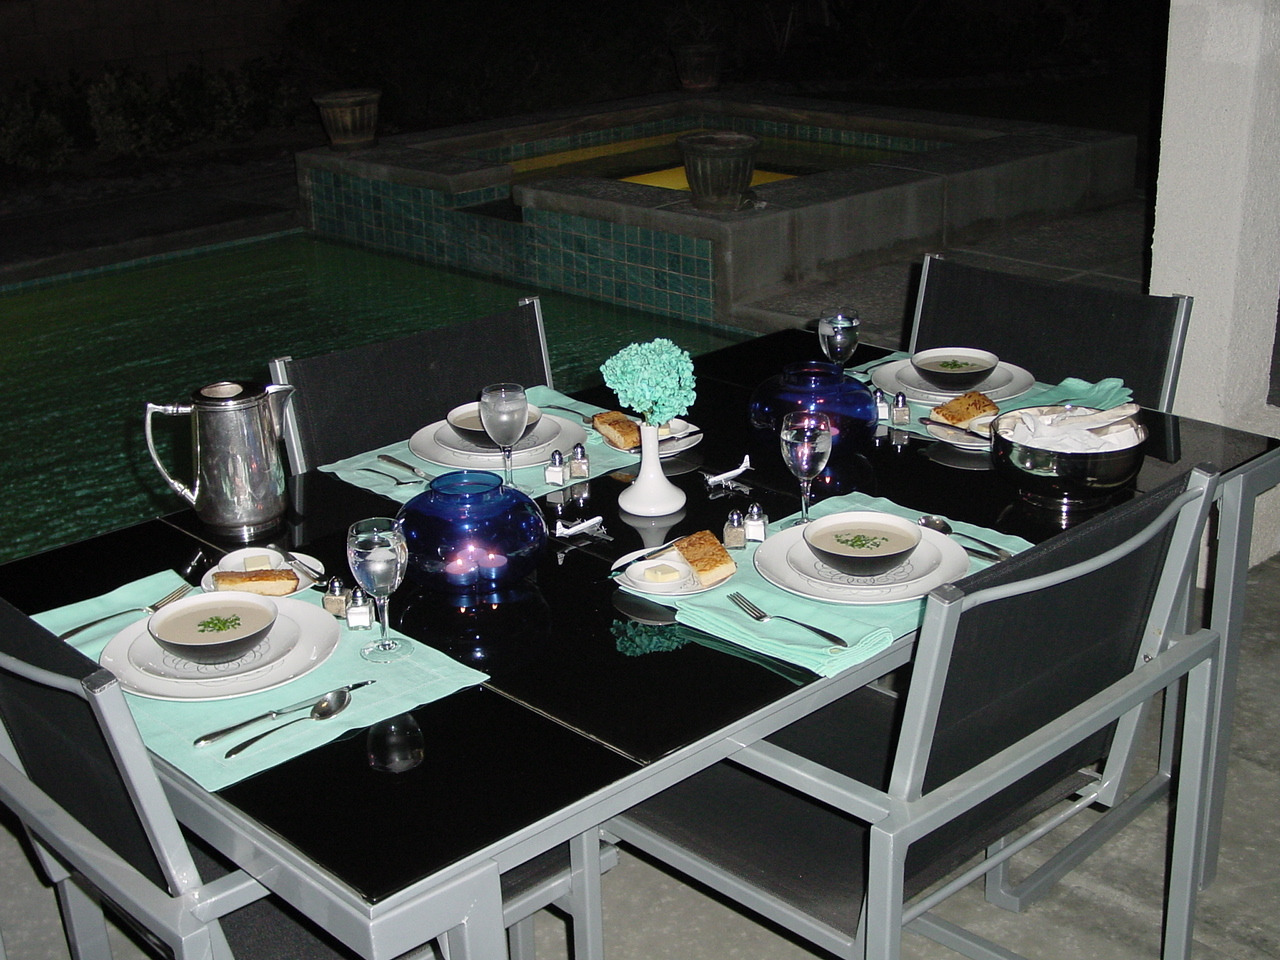 A poolside dinner setting with Pan Am's 1950s President Special setting with Rosenthal 'Script' plates.